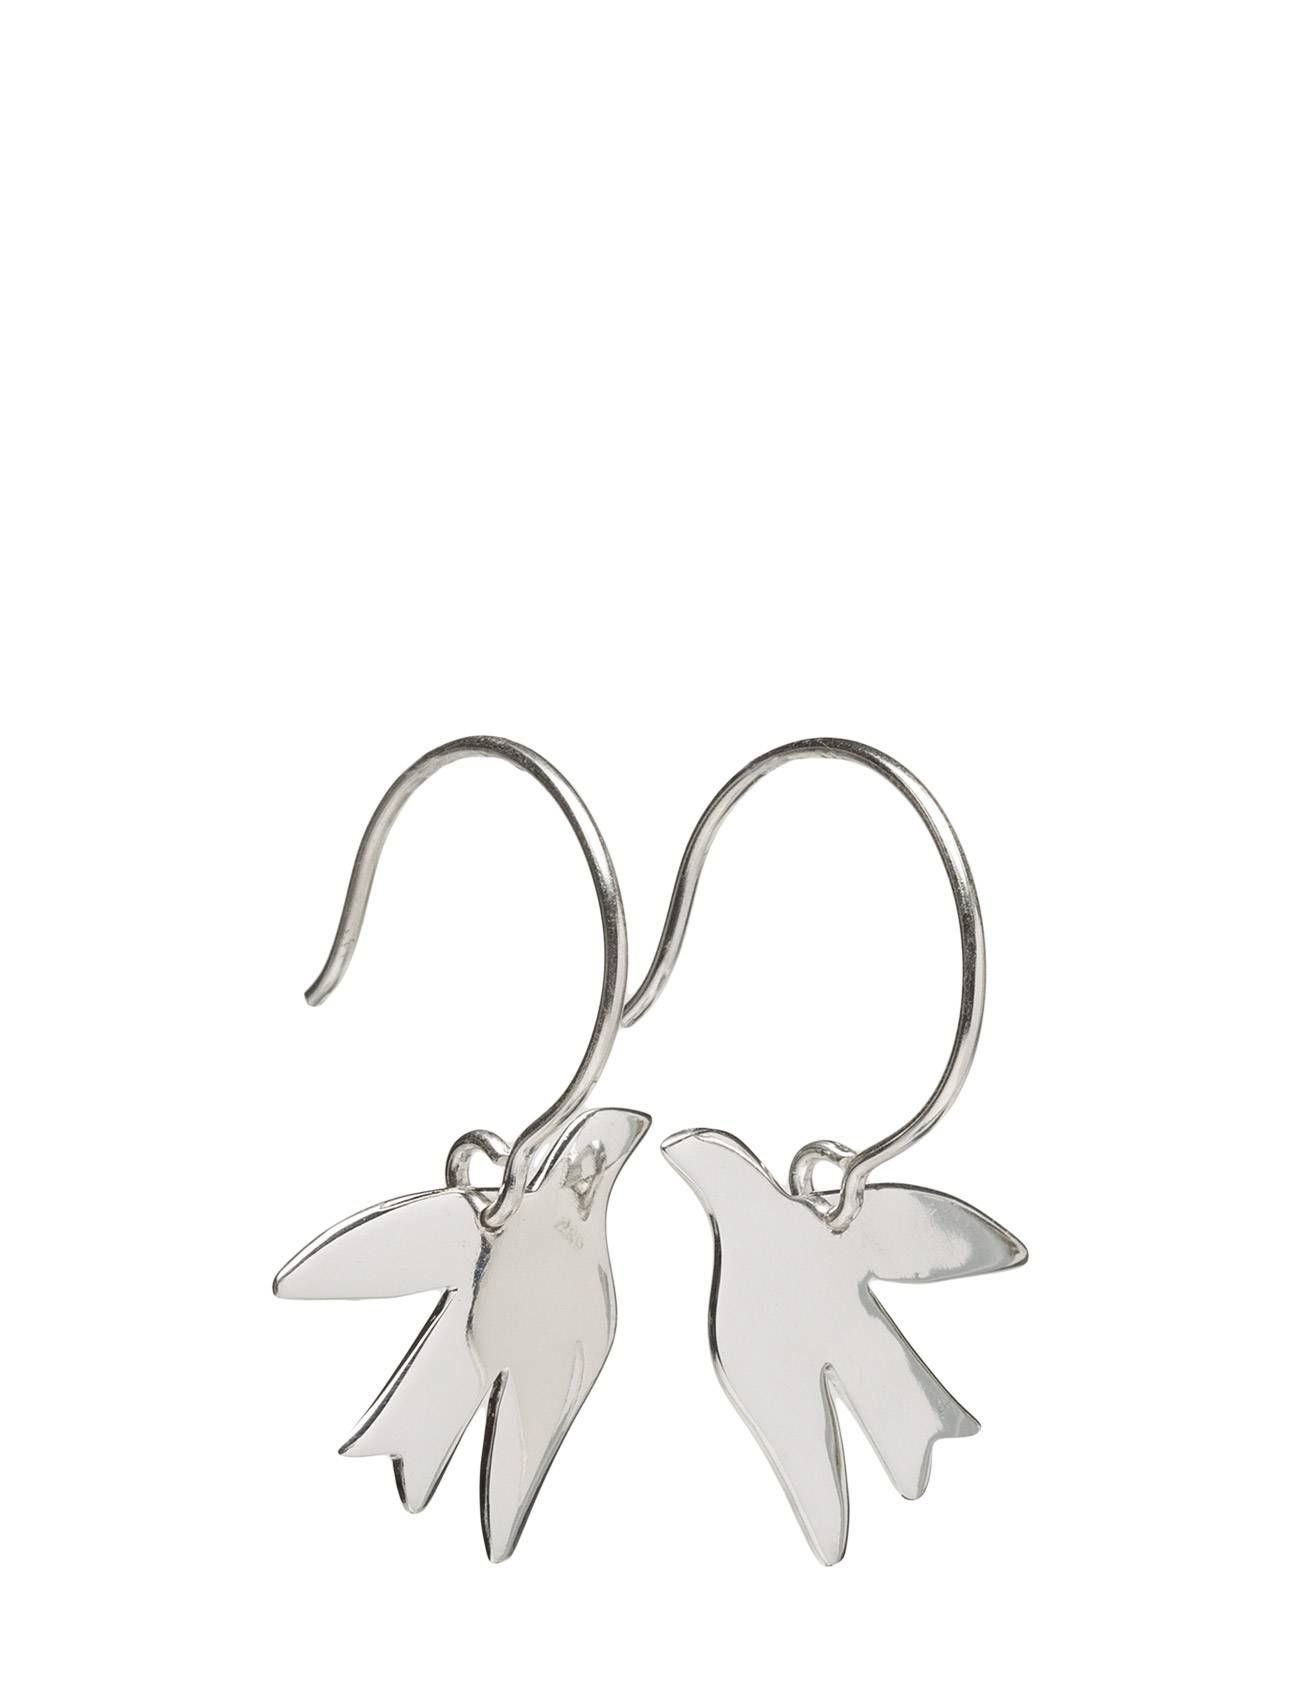 Syster P Bridy Earrings Silver